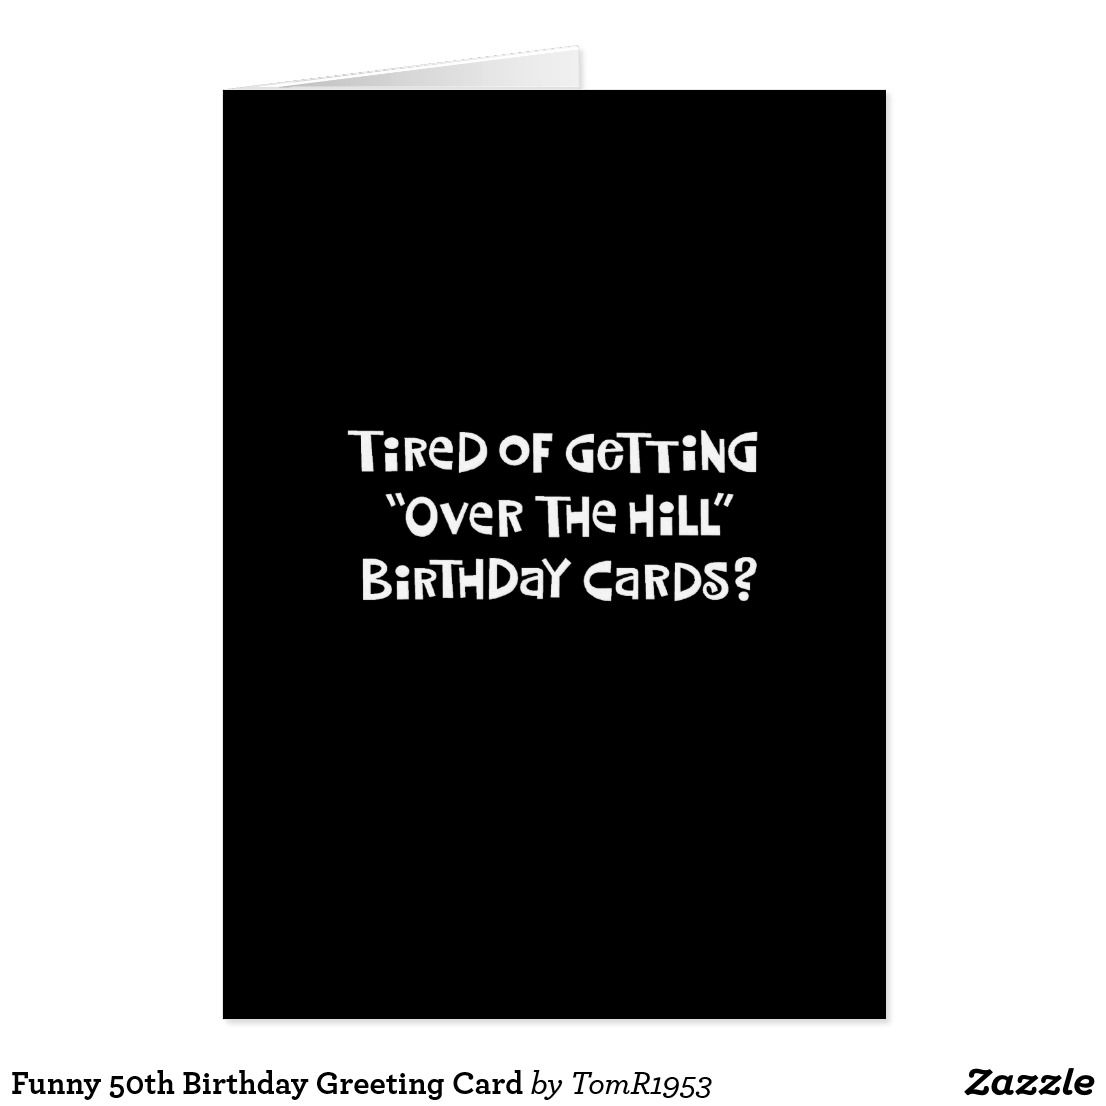 Funny 50th birthday greeting card funny greeting cards pinterest funny 50th birthday greeting card m4hsunfo